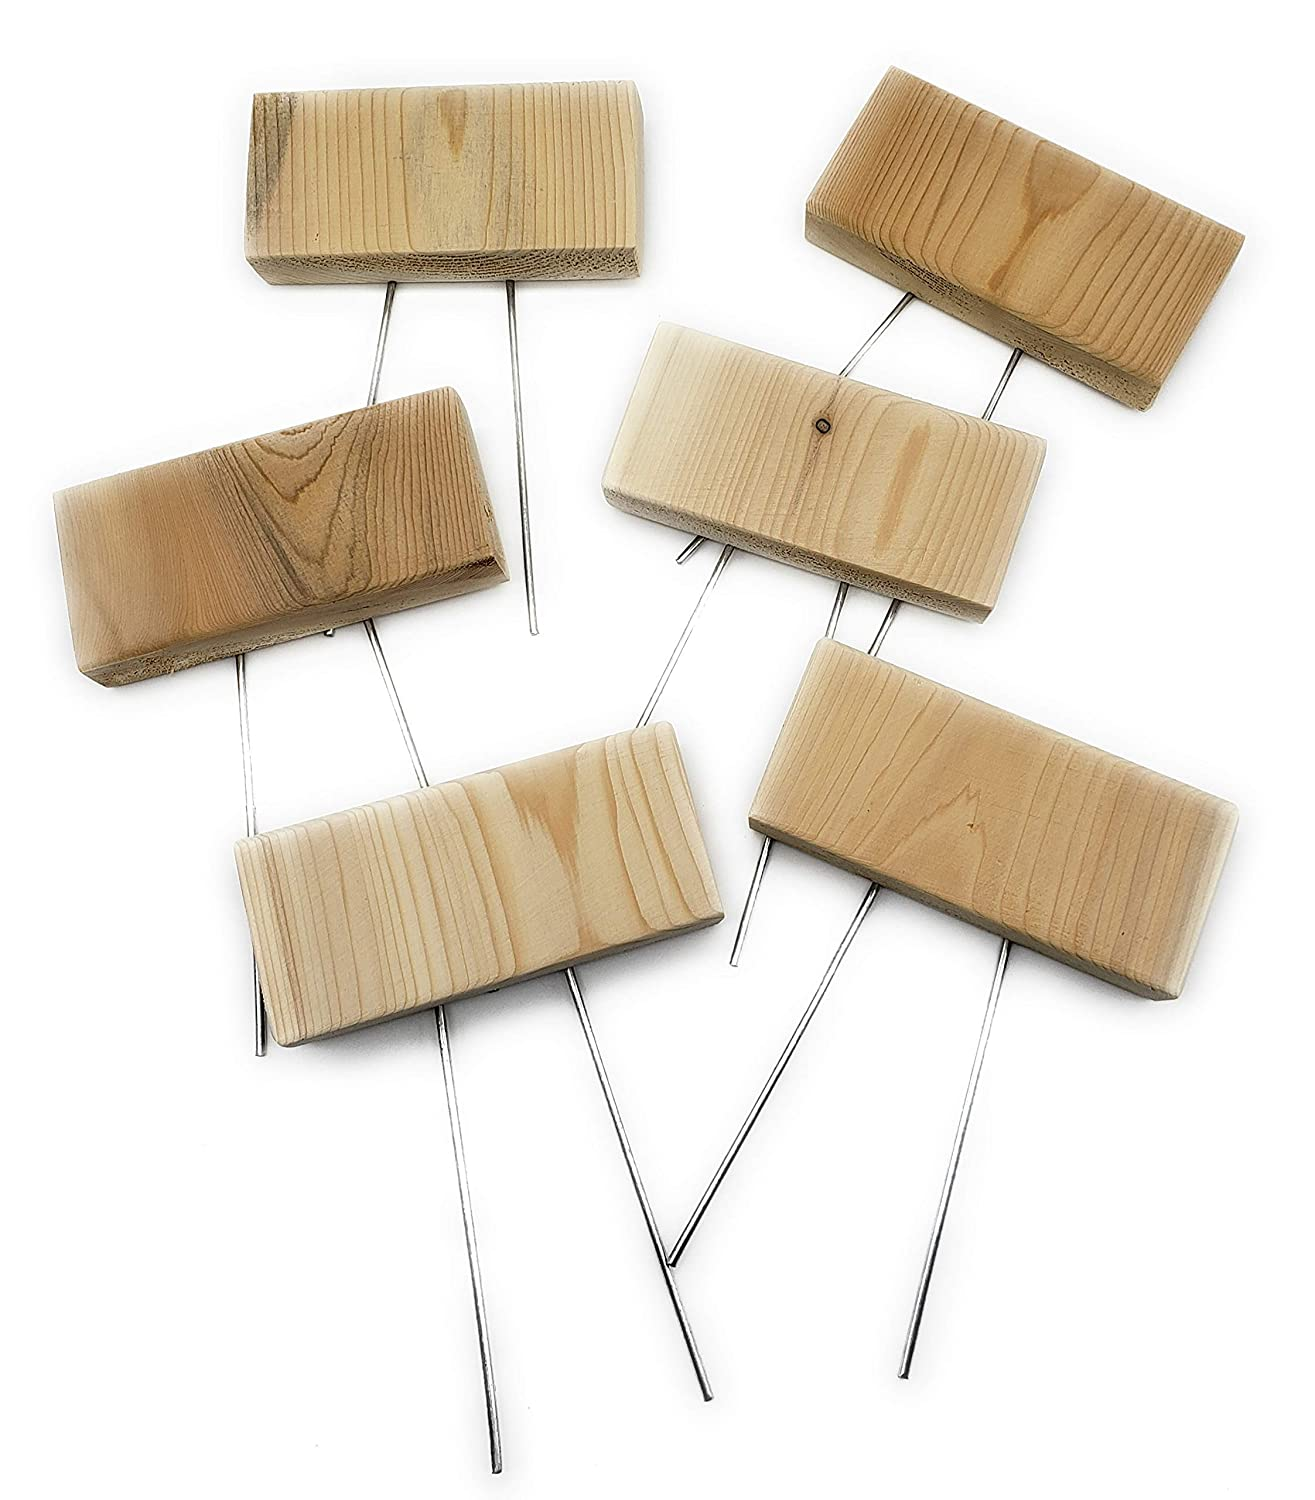 Blank Garden Markers With High order Pins Set of Spasm price 6 M Wood Plant Cedar DIY